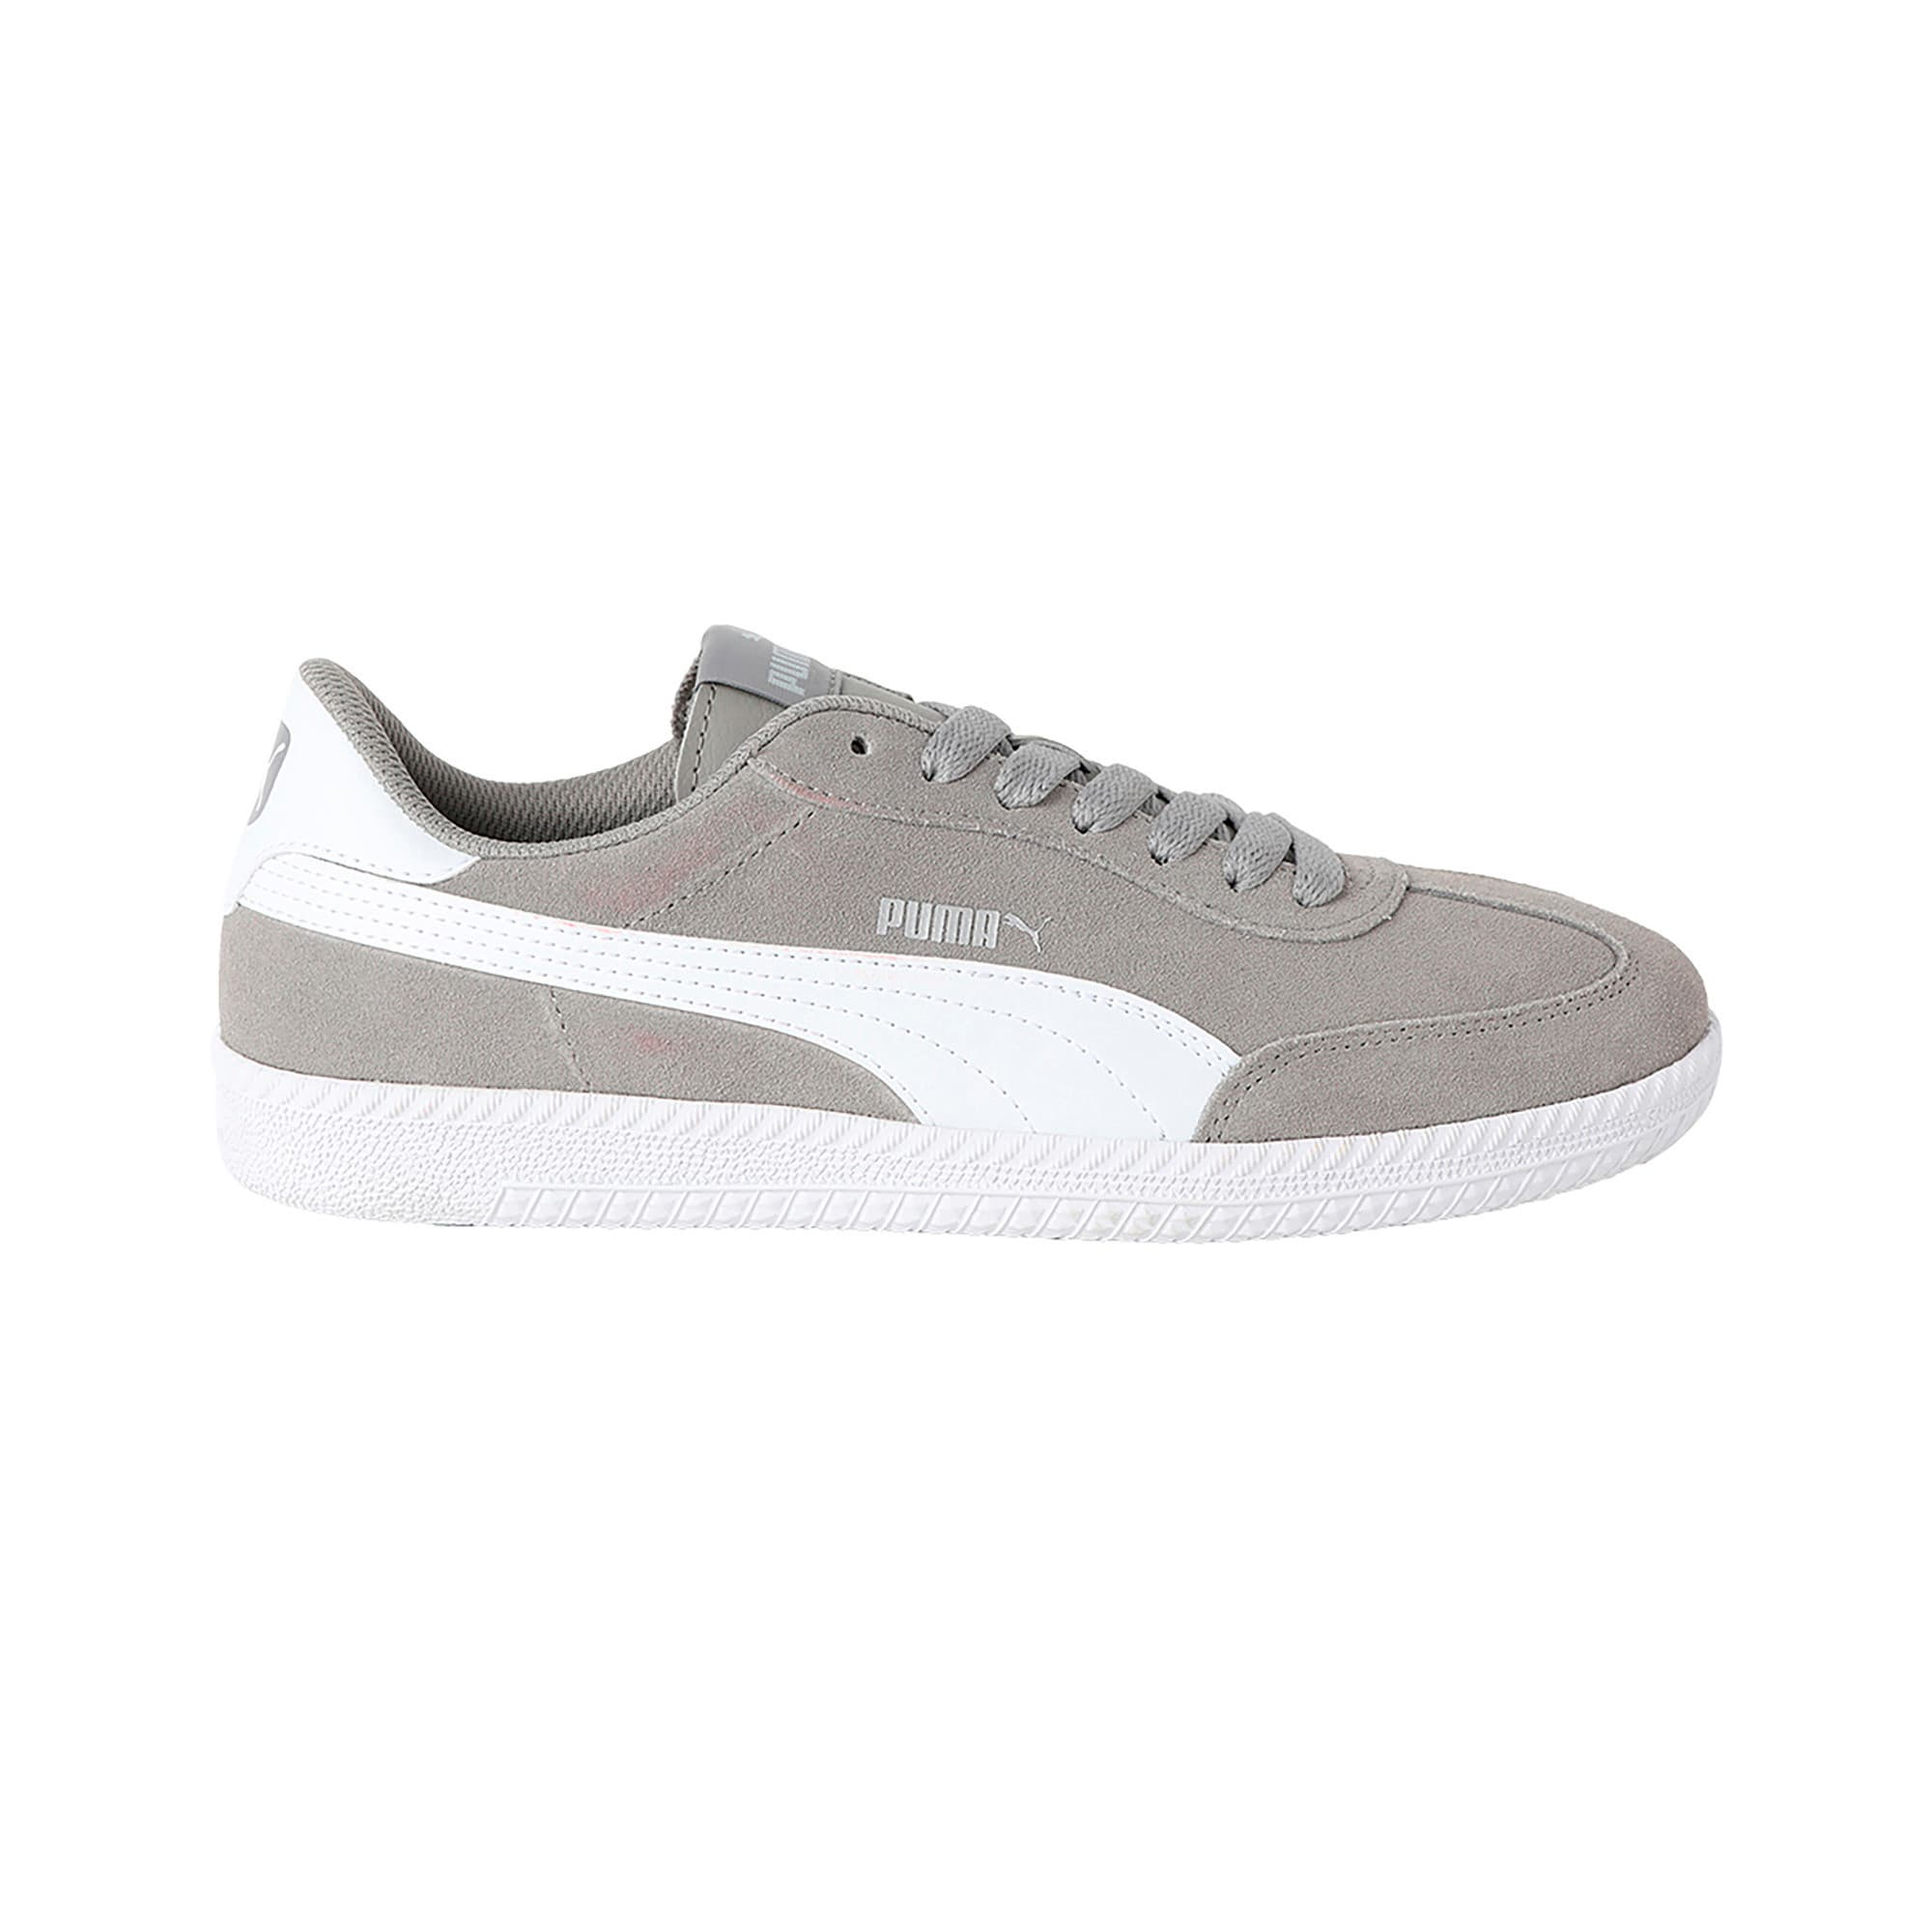 Thumbnail 5 of Astro Cup Trainers, Elephant Skin-Puma White, medium-IND